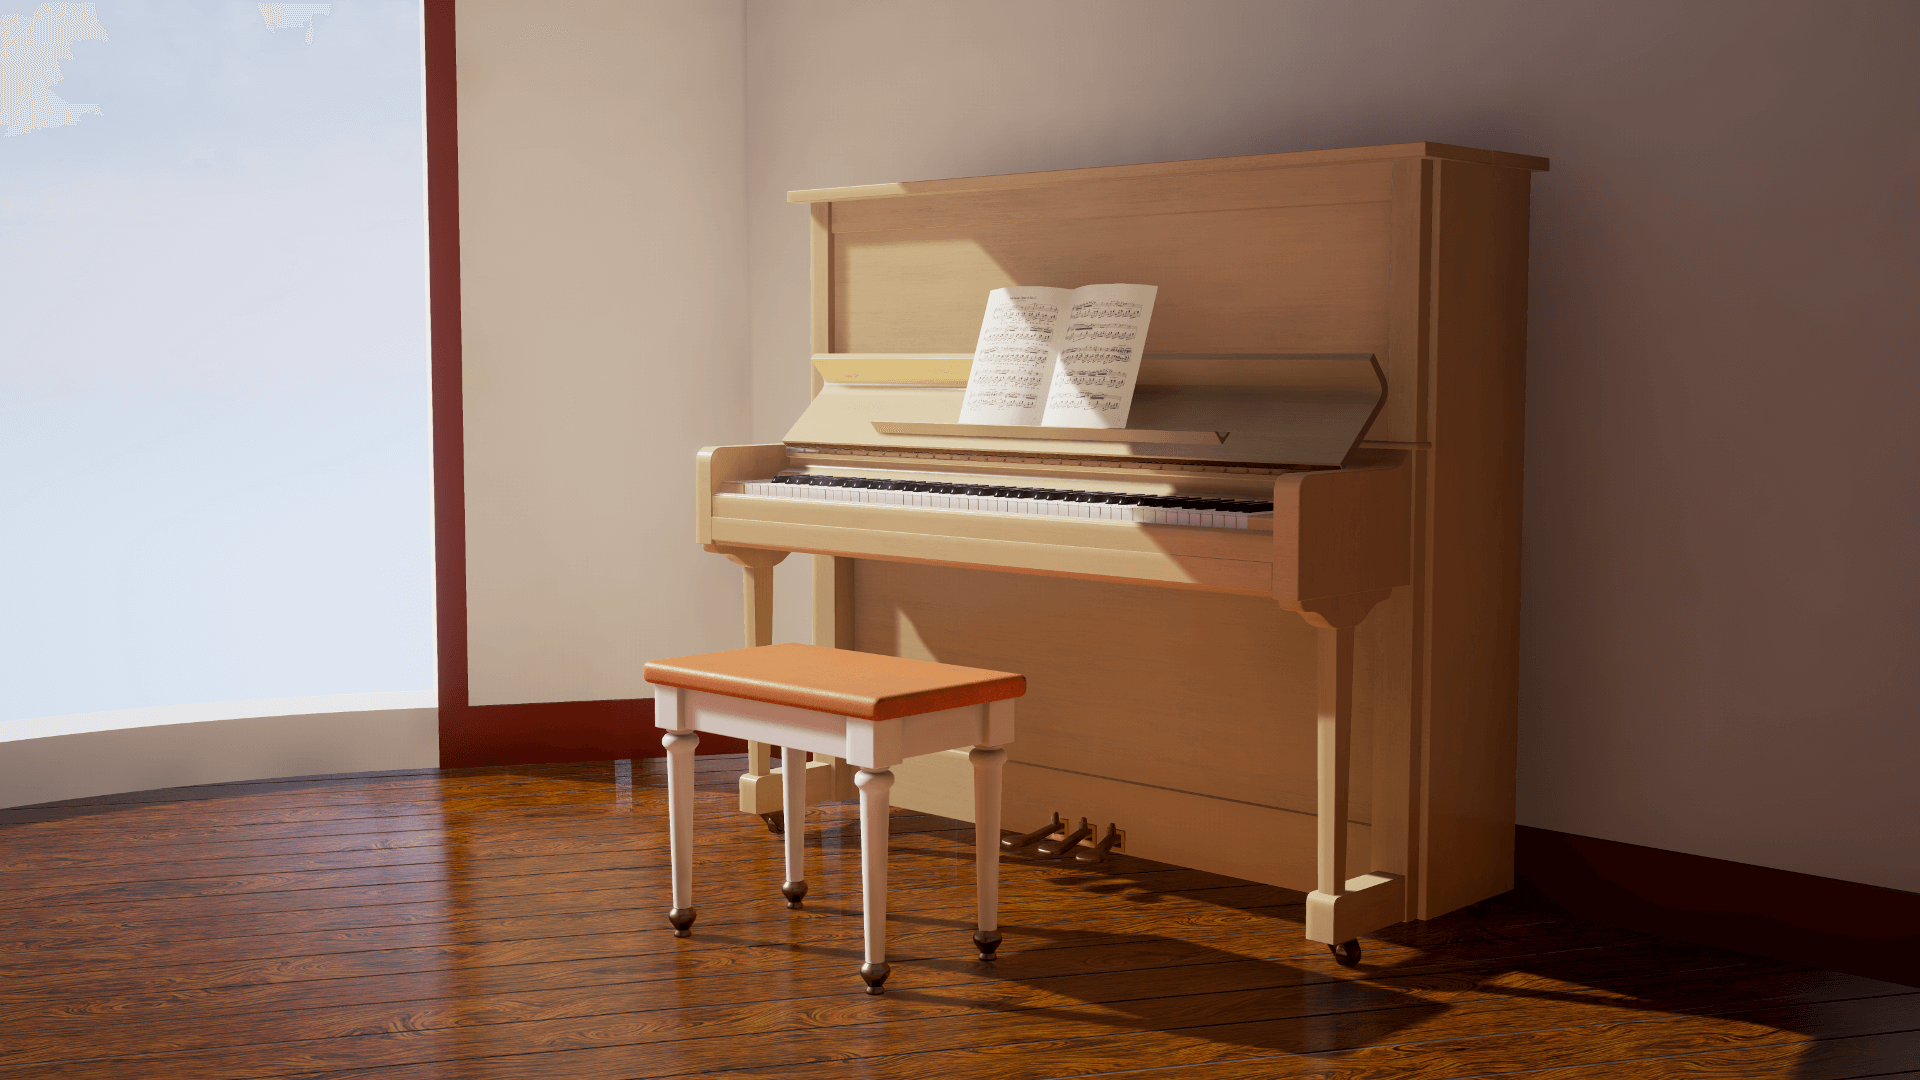 Pianos Amp Benches Pack By Danlab In Architectural